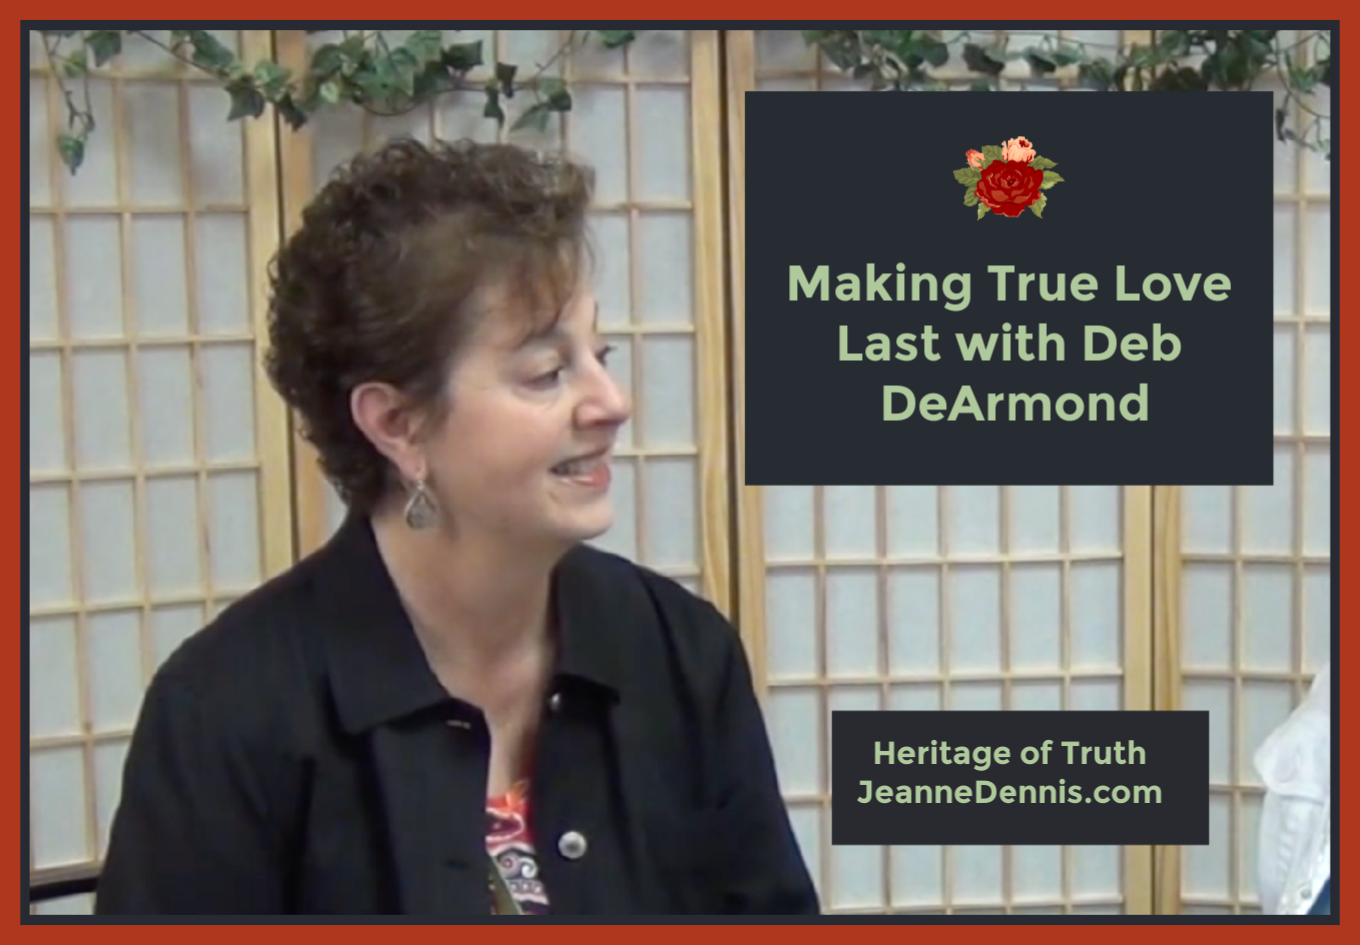 Deb DeArmond Making True Love Last, Heritage of Truth, JeanneDennis.com